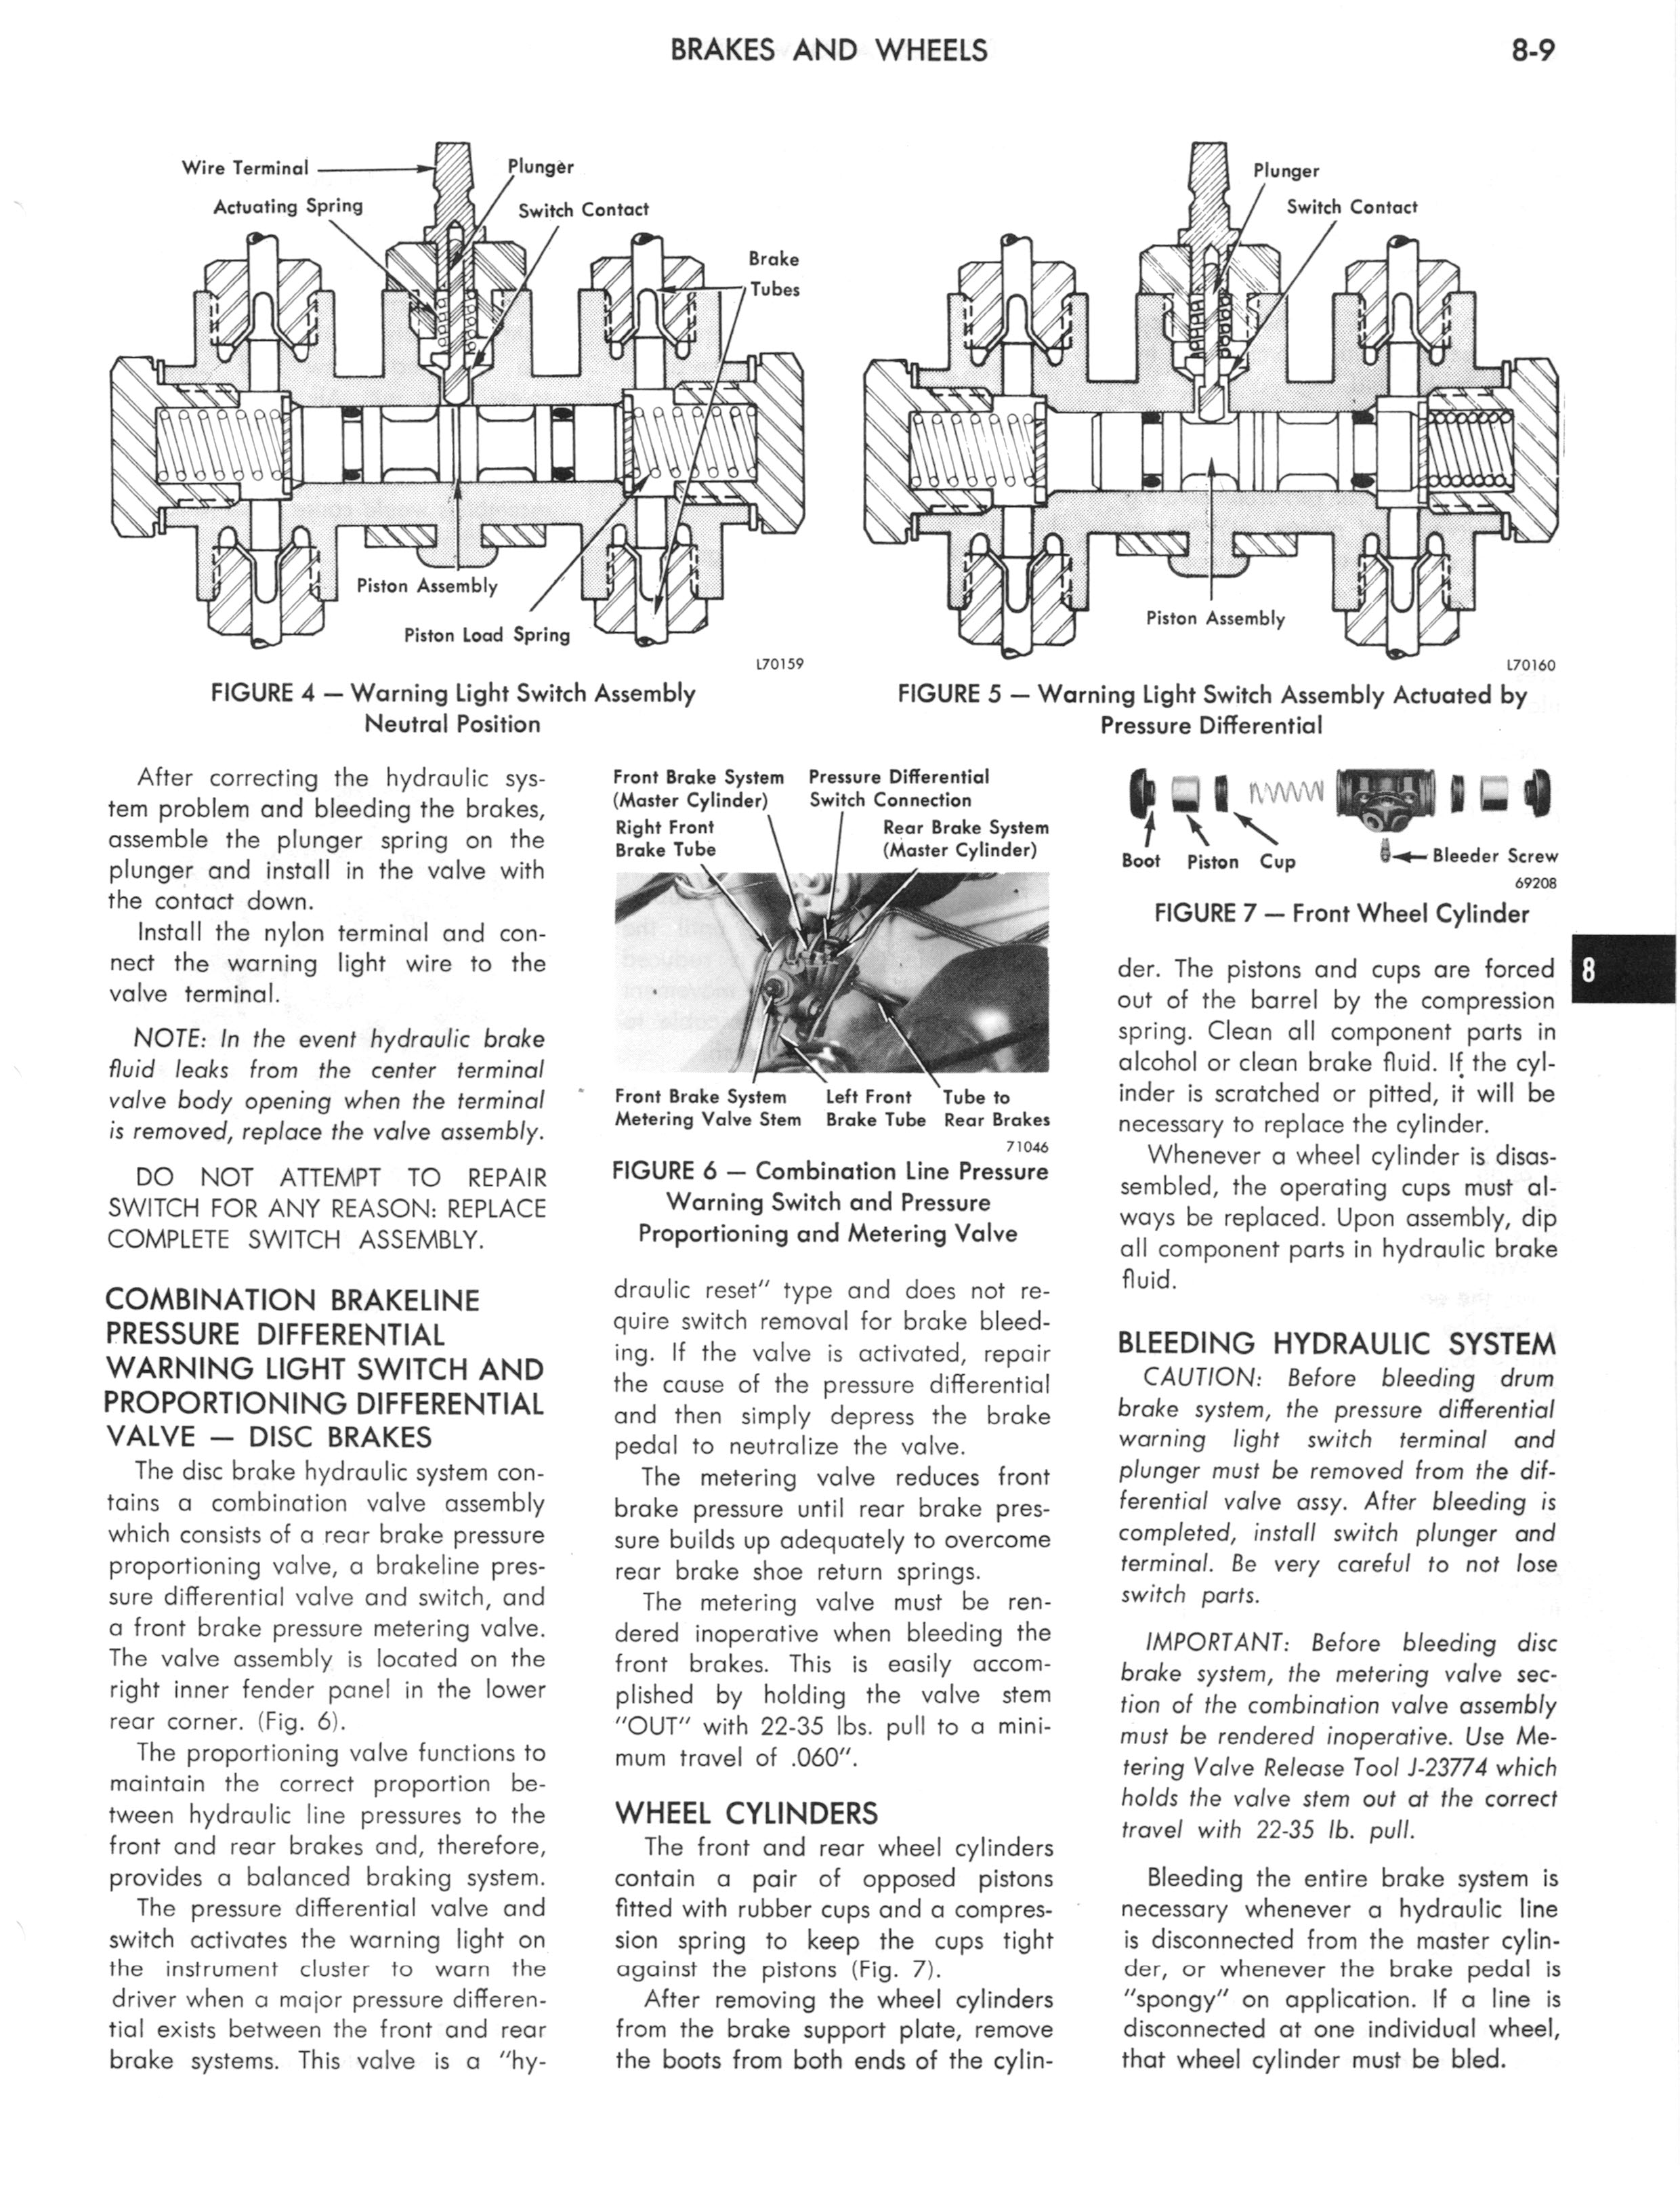 1973 AMC Technical Service Manual page 259 of 487